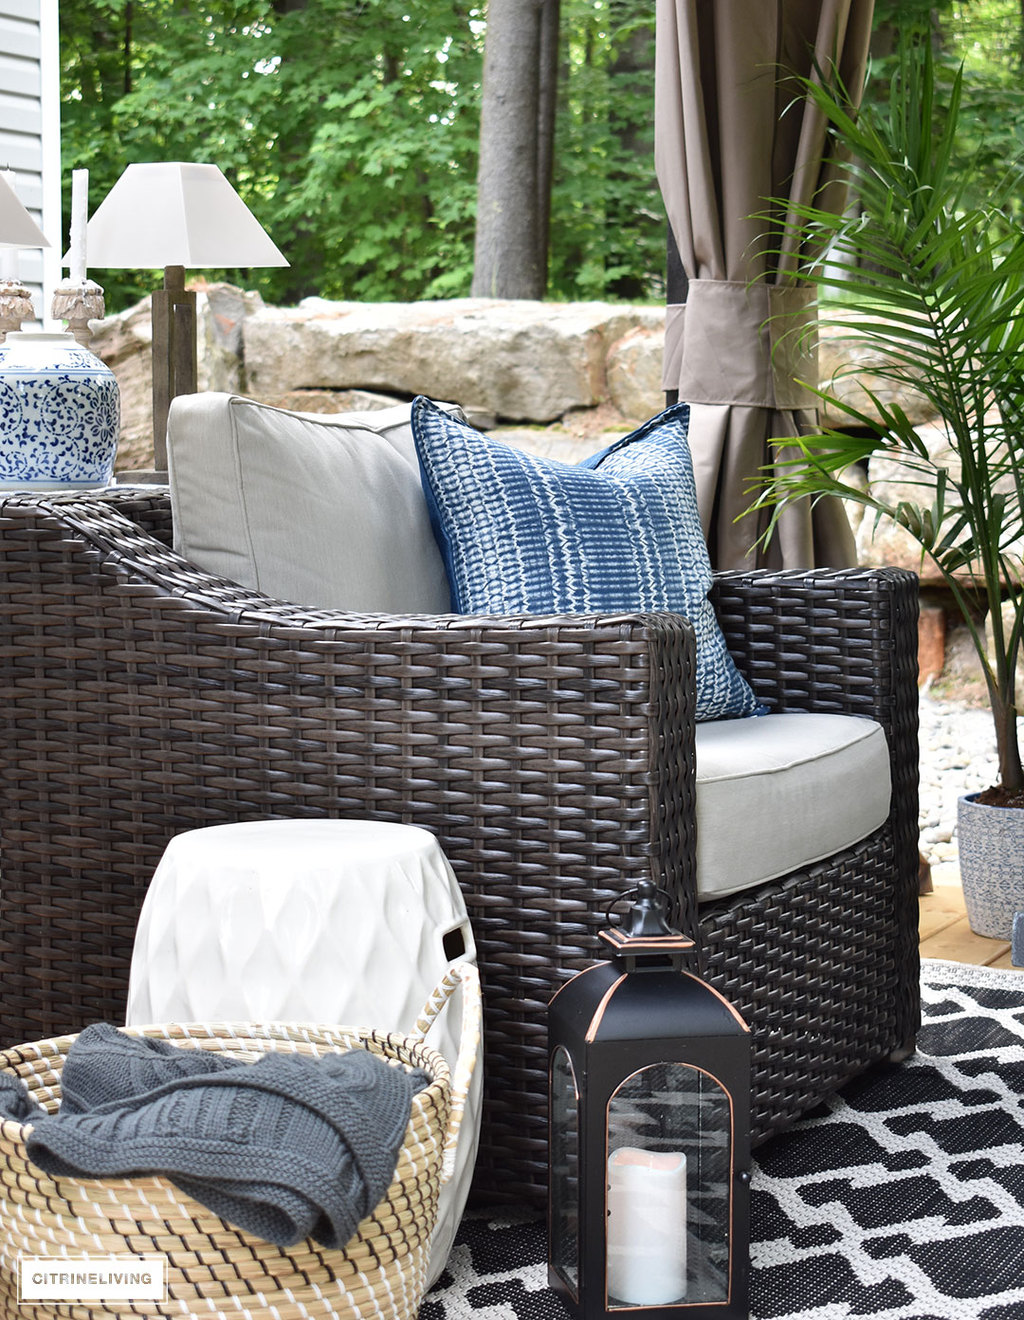 Create a comfortable and inviting outdoor setting with resin wicker club chairs and layered accessories. Blue and white touches are always classic and elegant for Summer decorating outdoors!